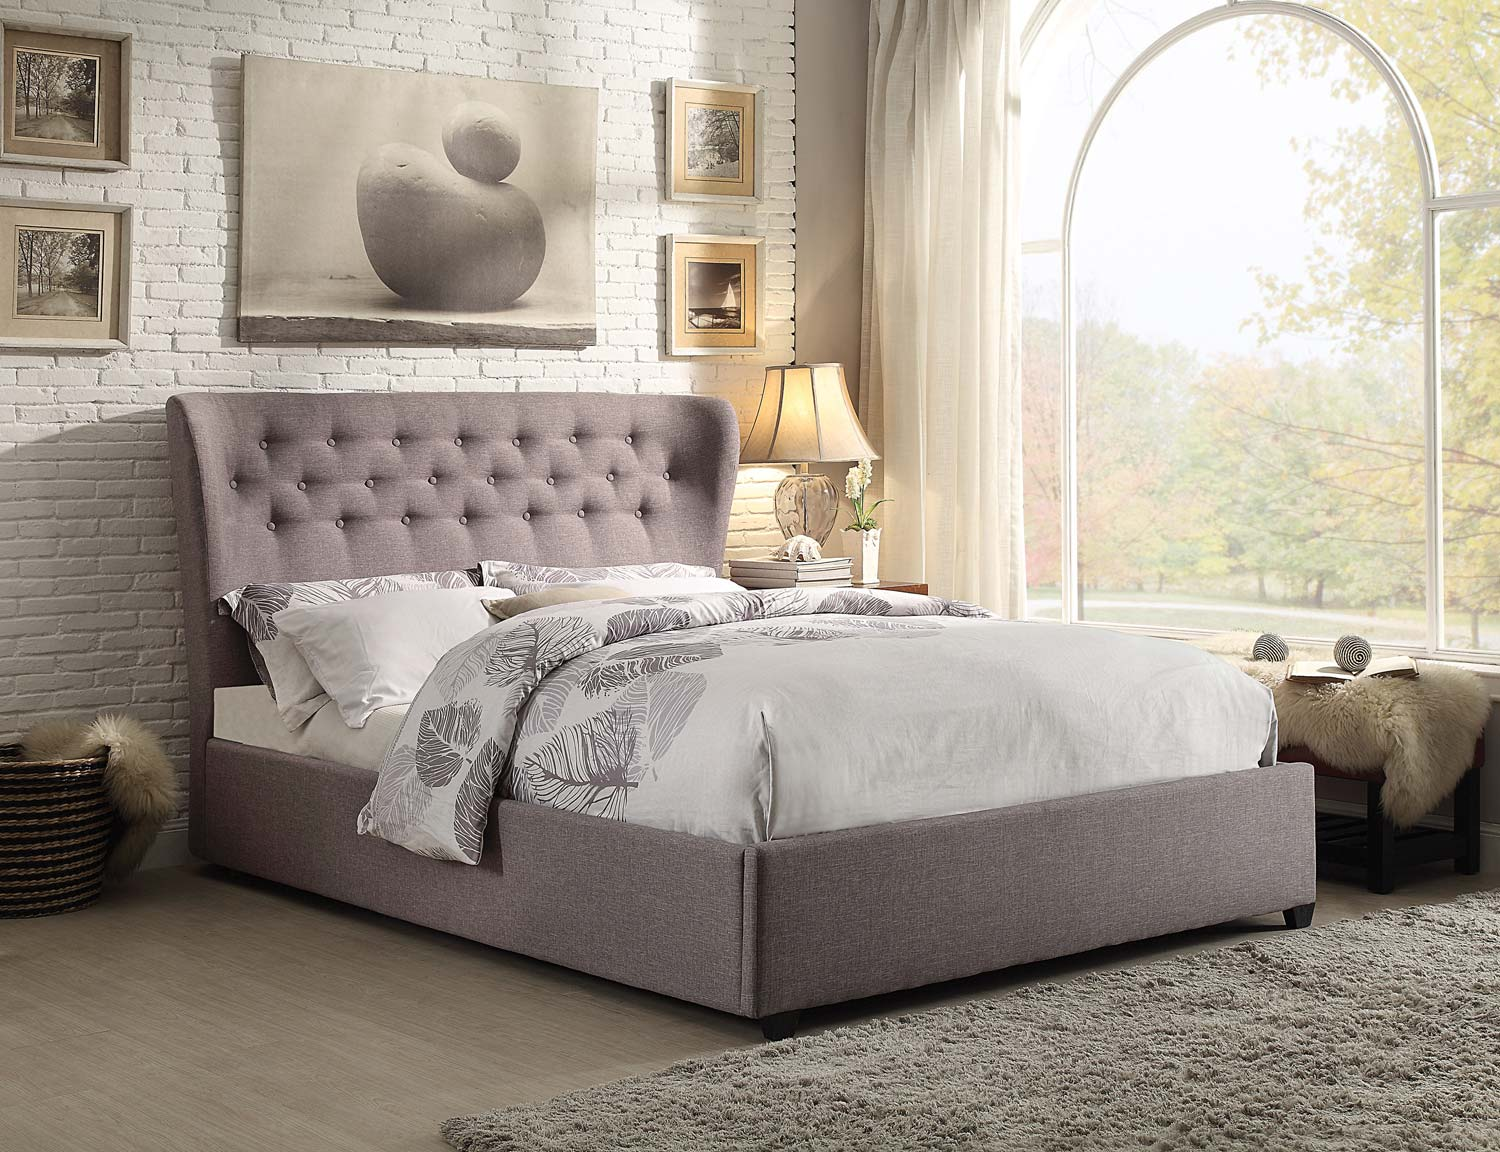 Homelegance Wade Upholstered Wing Bed - Grey